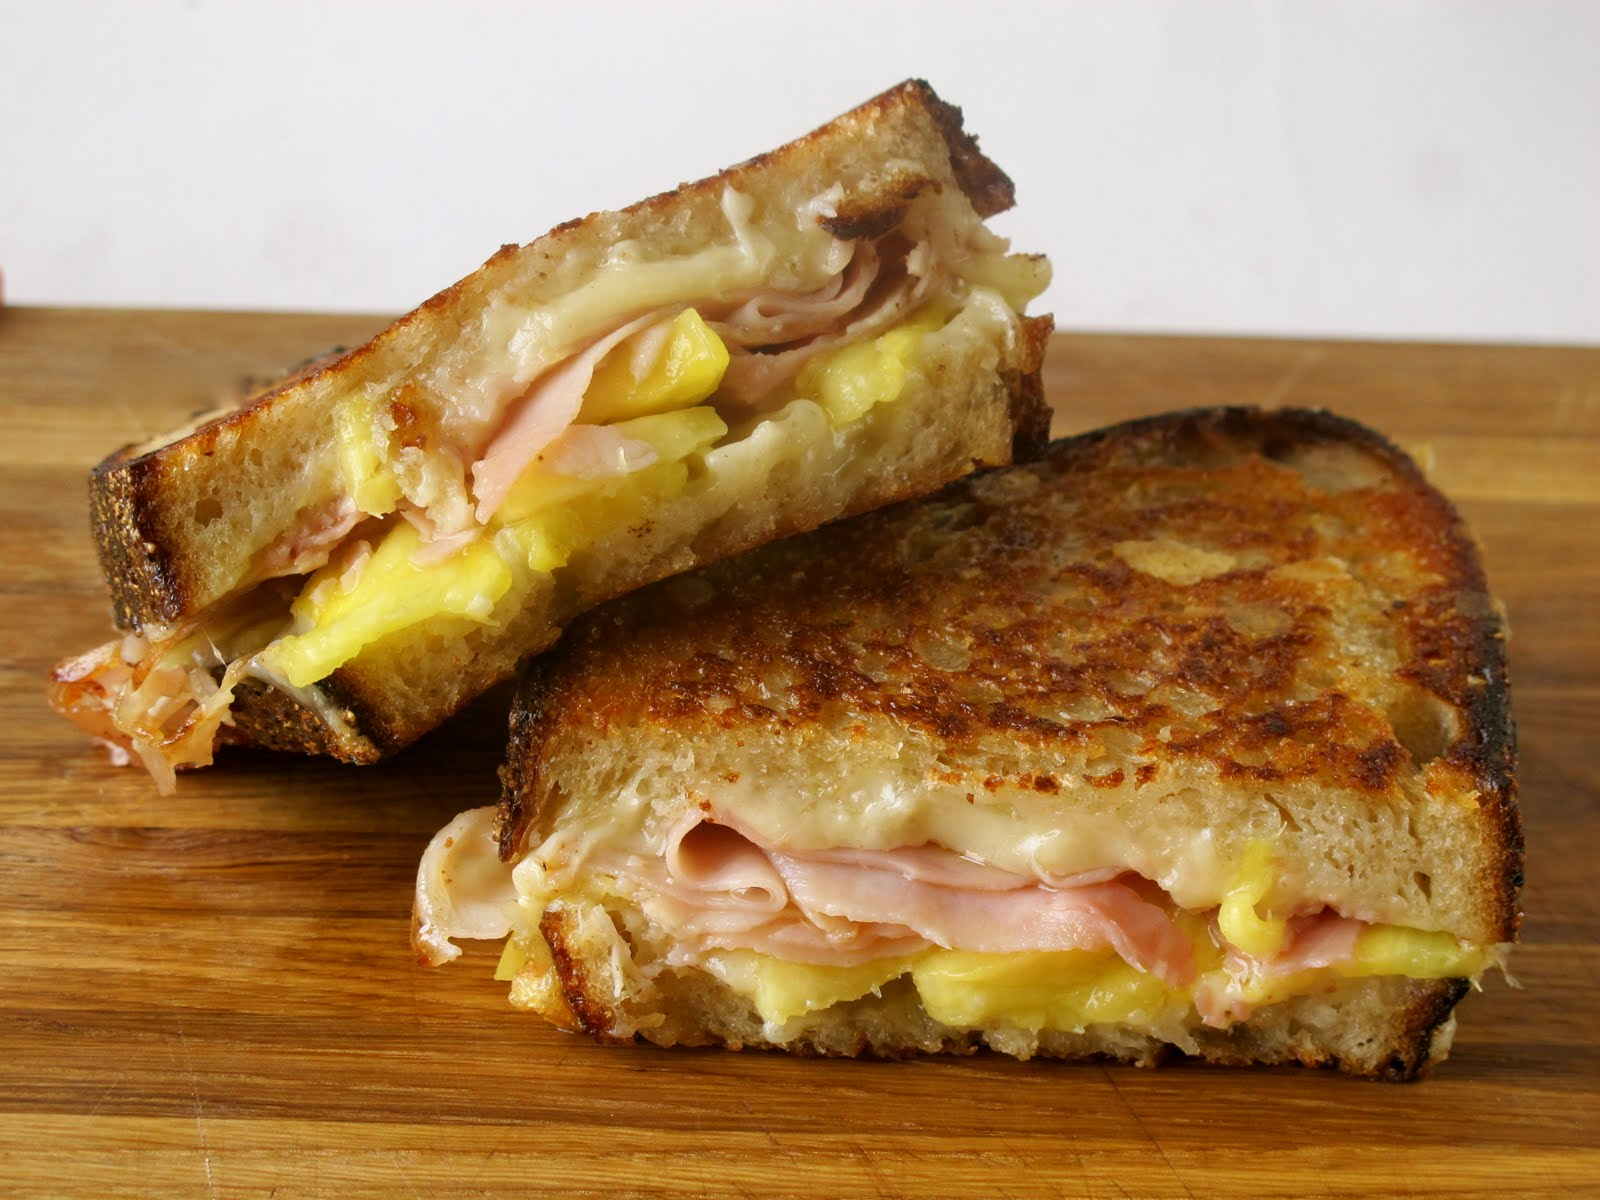 Grilled Ham And Cheese Sandwich Recipe The grilled ham and cheese